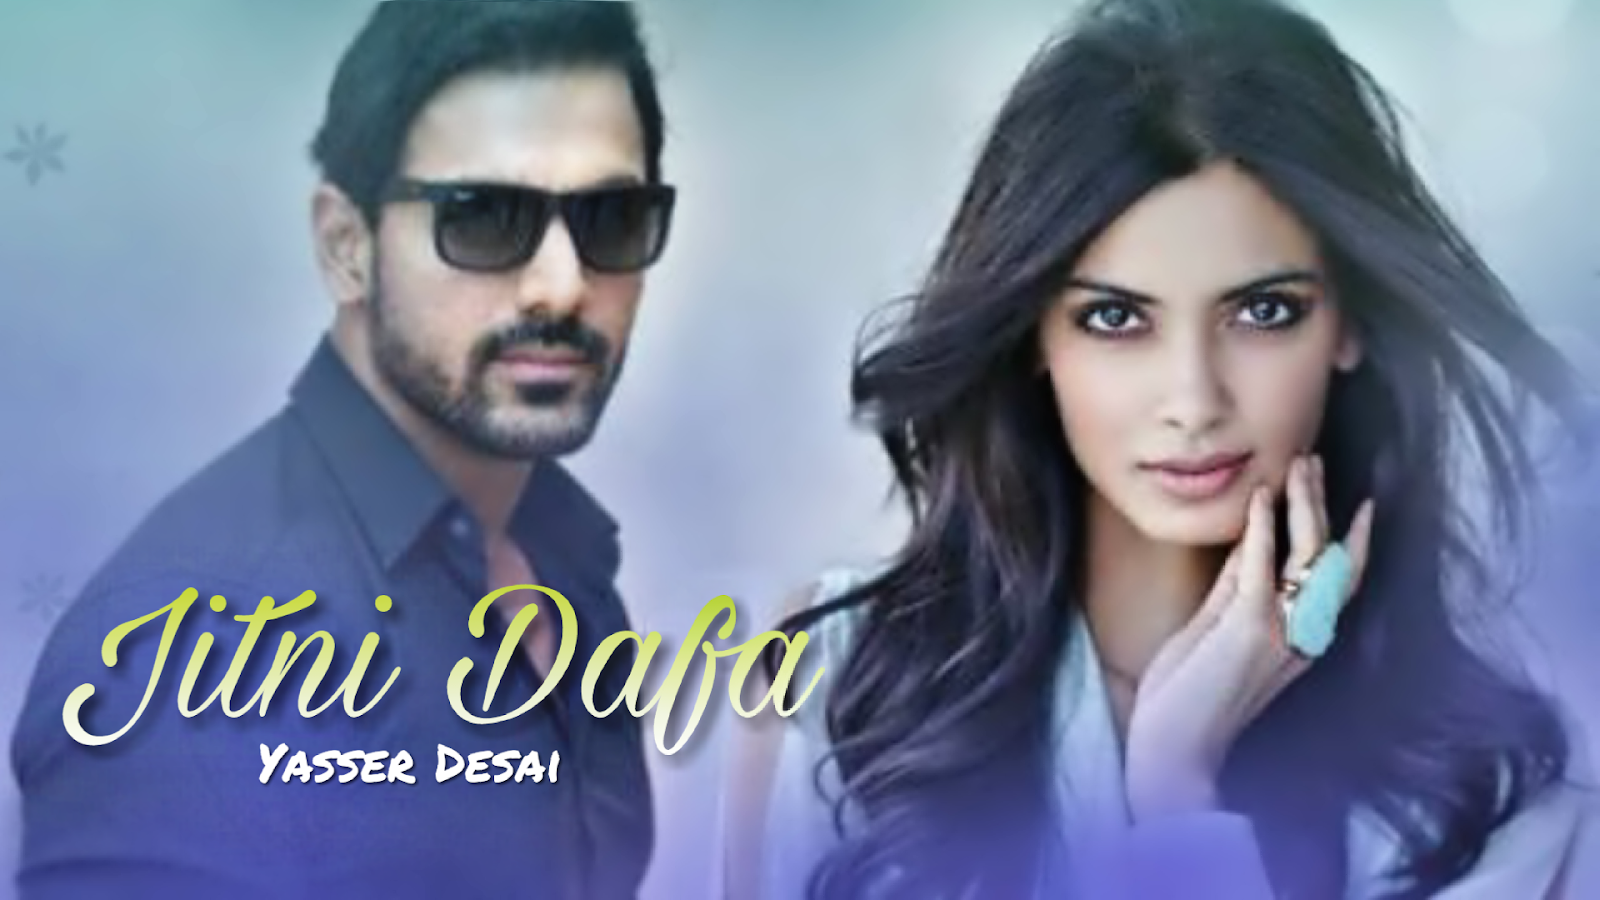 Jitni Dafa Yasser Desai lyrics, Parmanu movie wallpapers,Jitni Dafa Full Song Video,